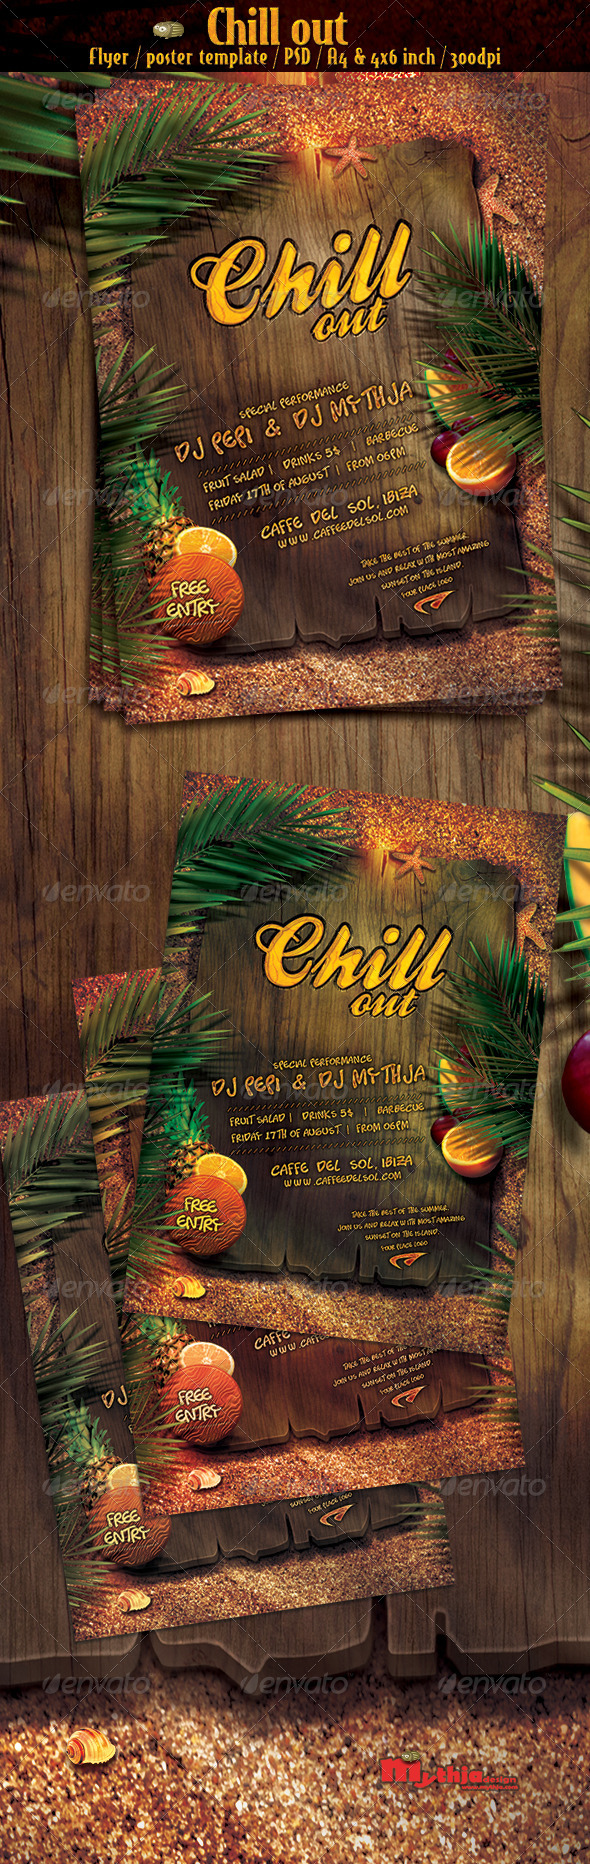 Chill out vol.1 - party flyer/poster template - Clubs & Parties Events